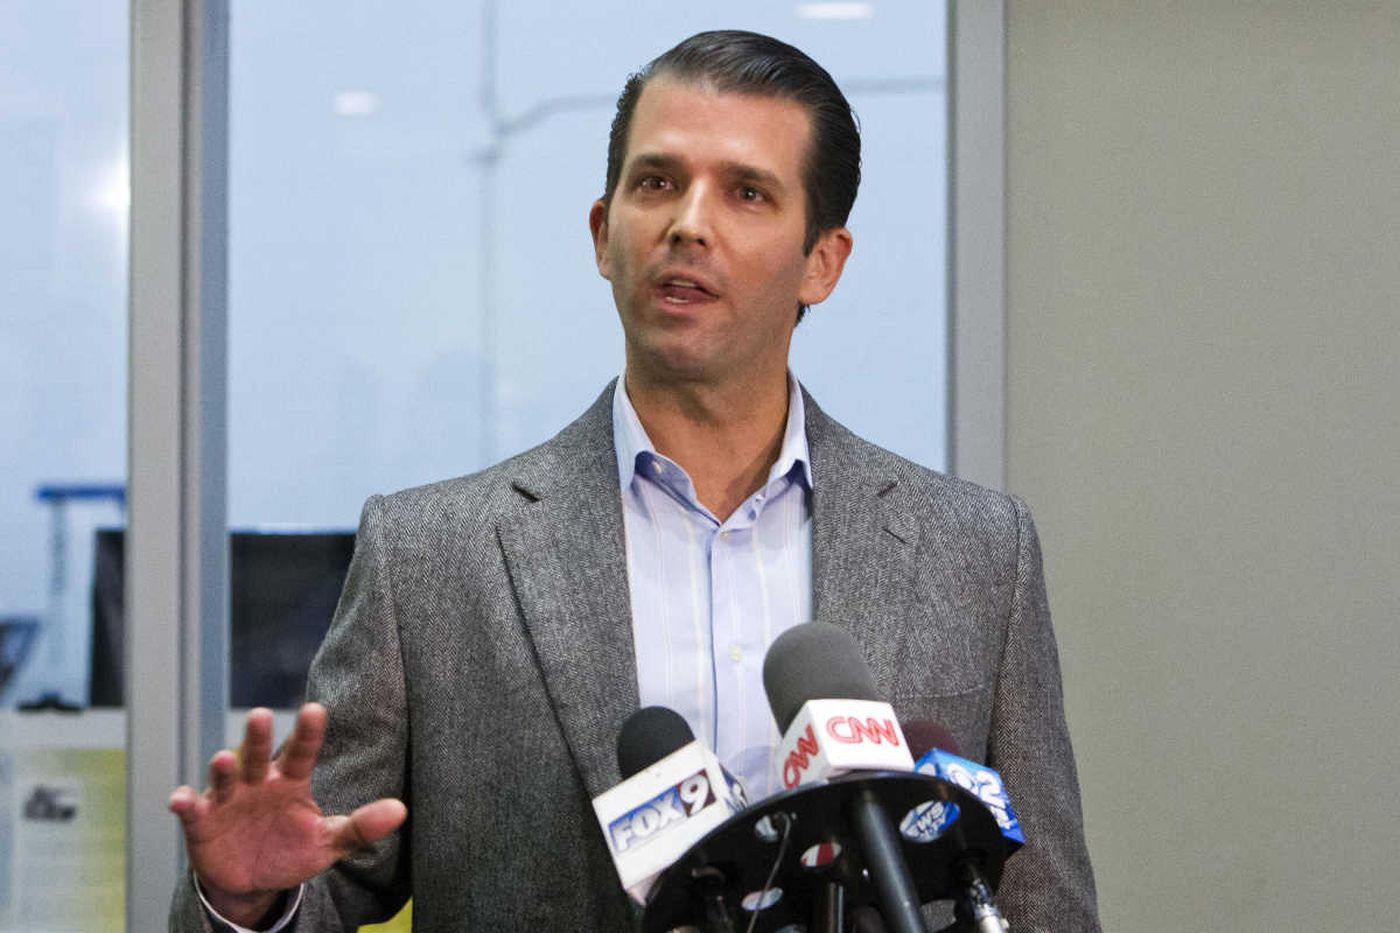 Donald Jr.'s meeting dumb but, so far, not criminal - and nowhere near treason